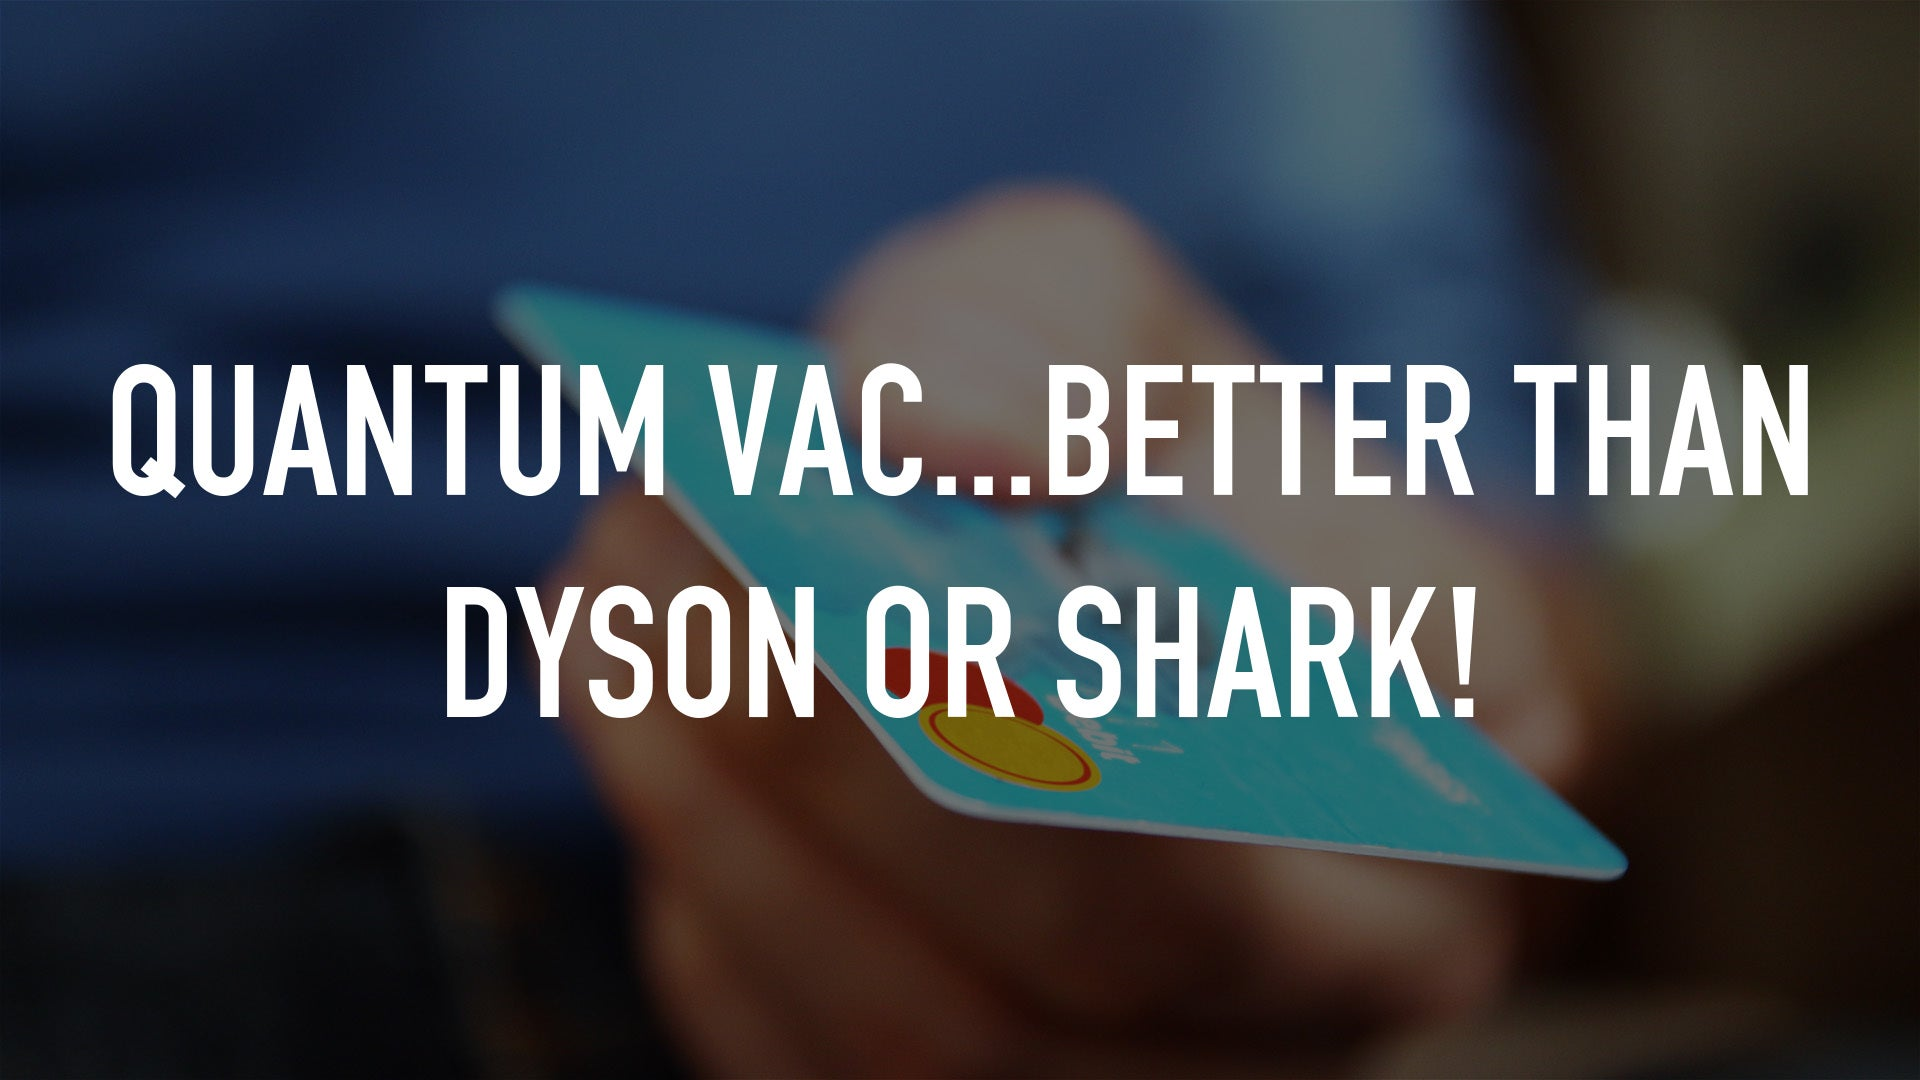 Quantum Vac...Better than Dyson or Shark!